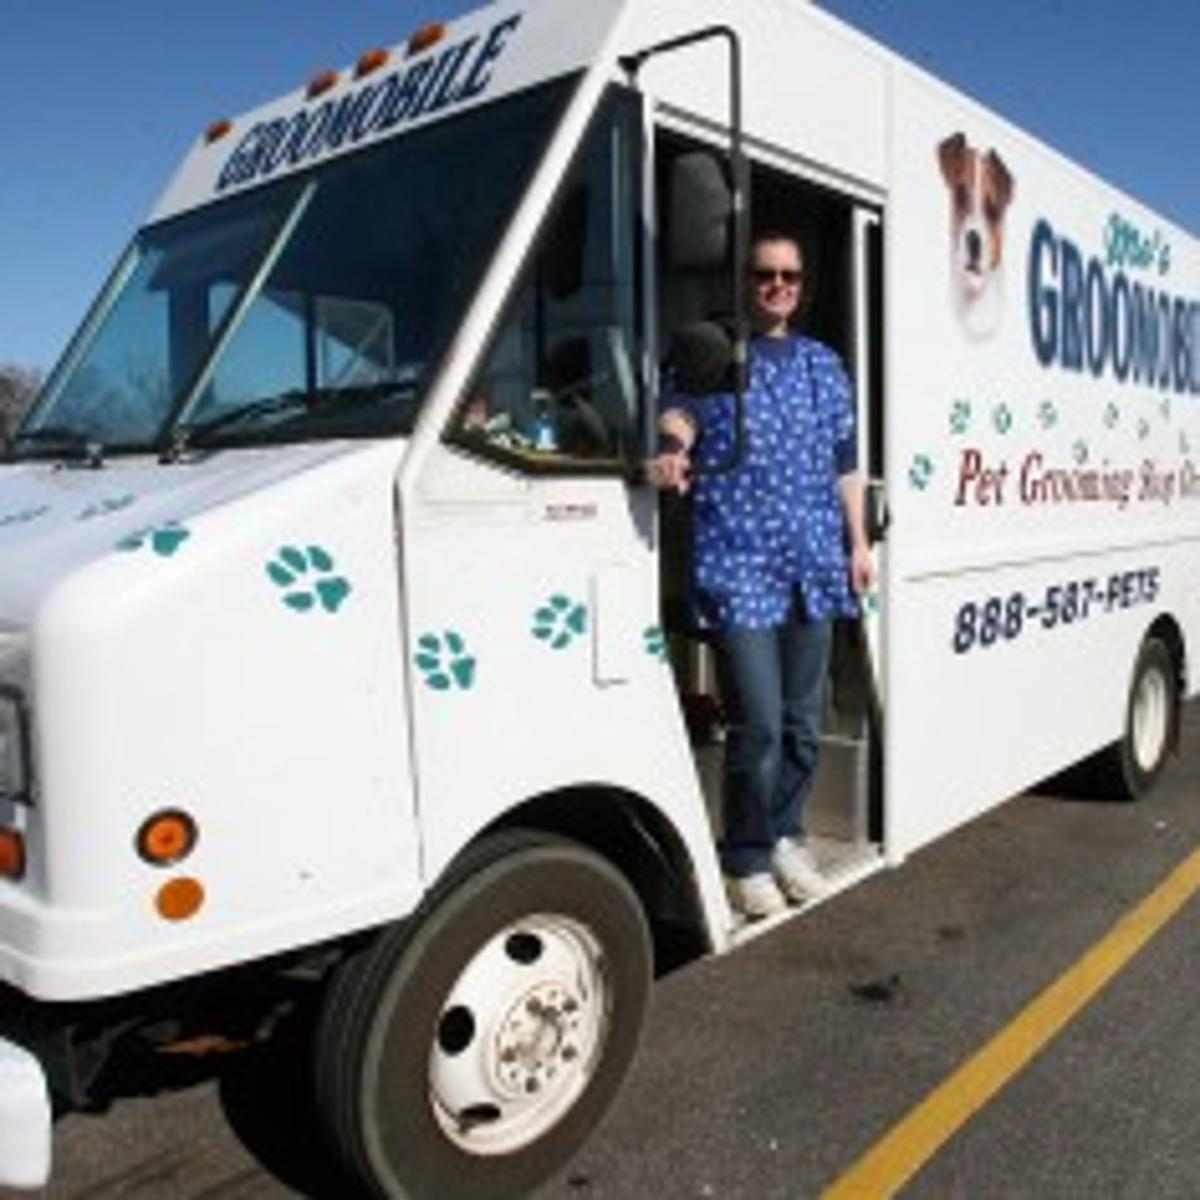 Mobile Pet Grooming Business